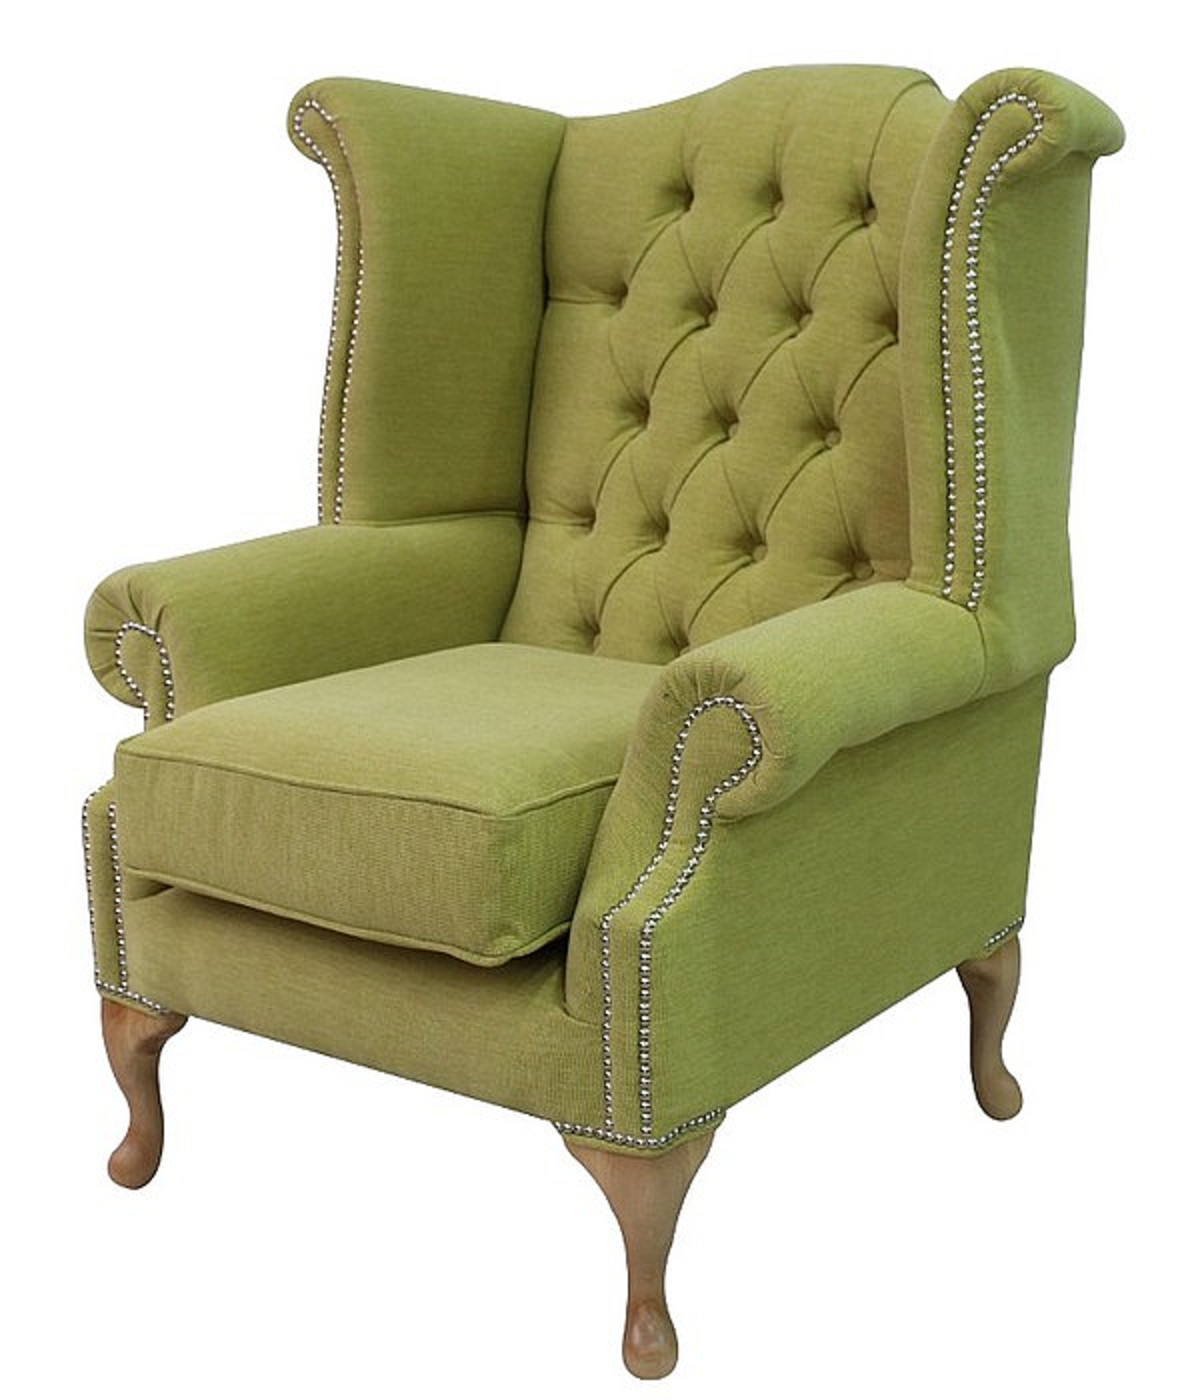 queen anne high back wing chair verity lime green fabric